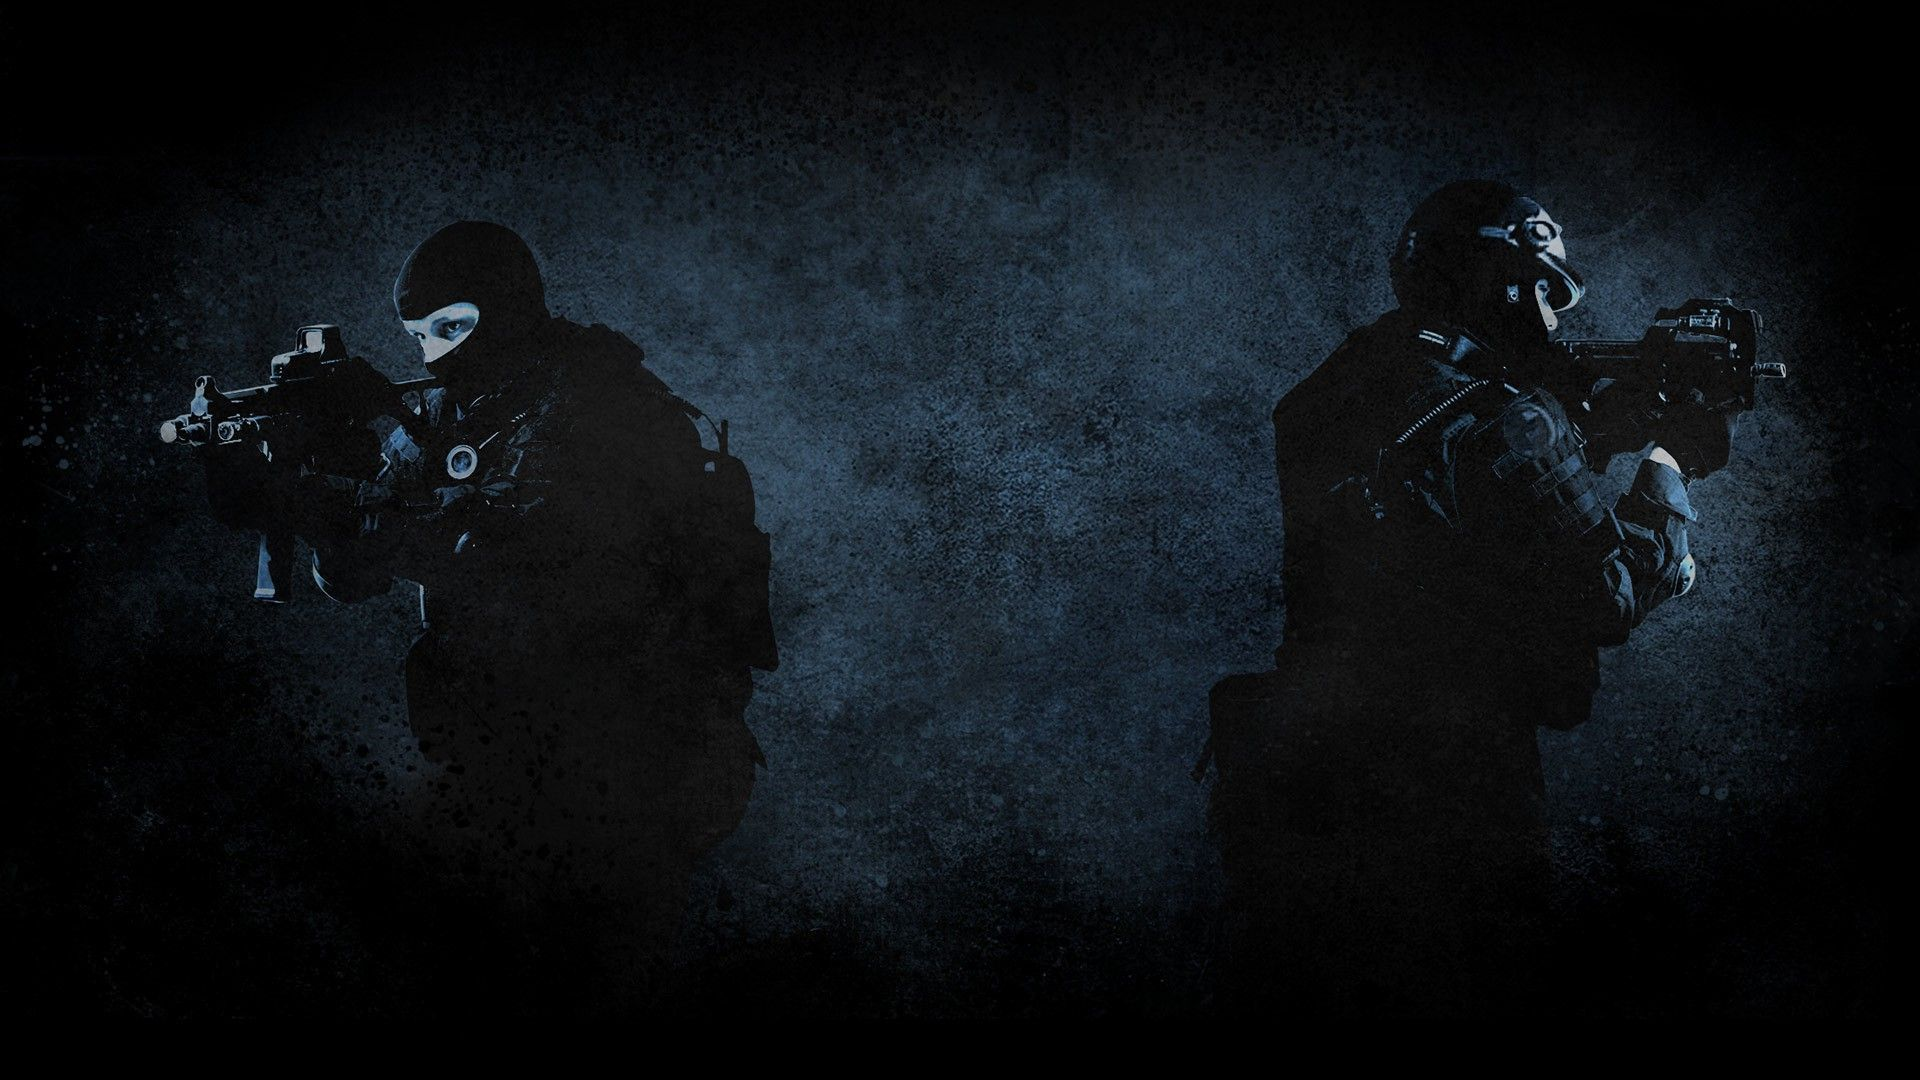 Counter-Strike-wallpaper-wp3804098